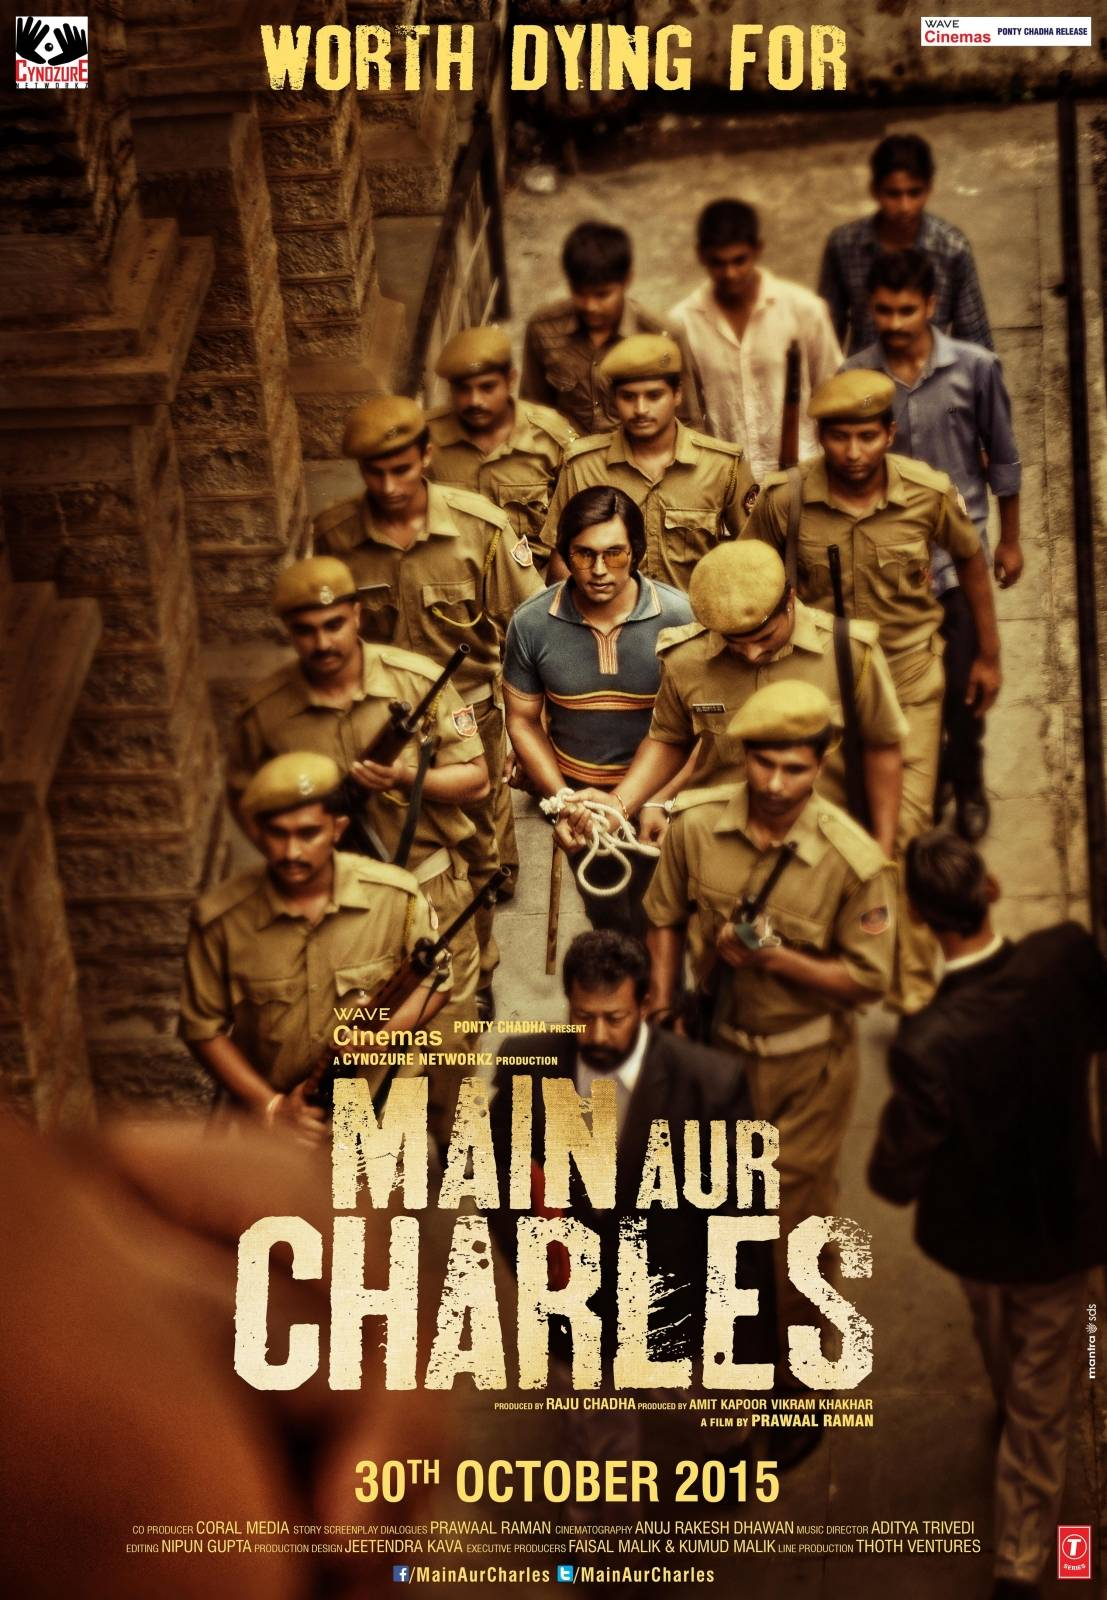 full cast and crew of bollywood movie Main aur Charles 2015 wiki, Randeep Hooda, Adil Hussain, Richa Chadda story, release date, Actress name poster, trailer, Photos, Wallapper